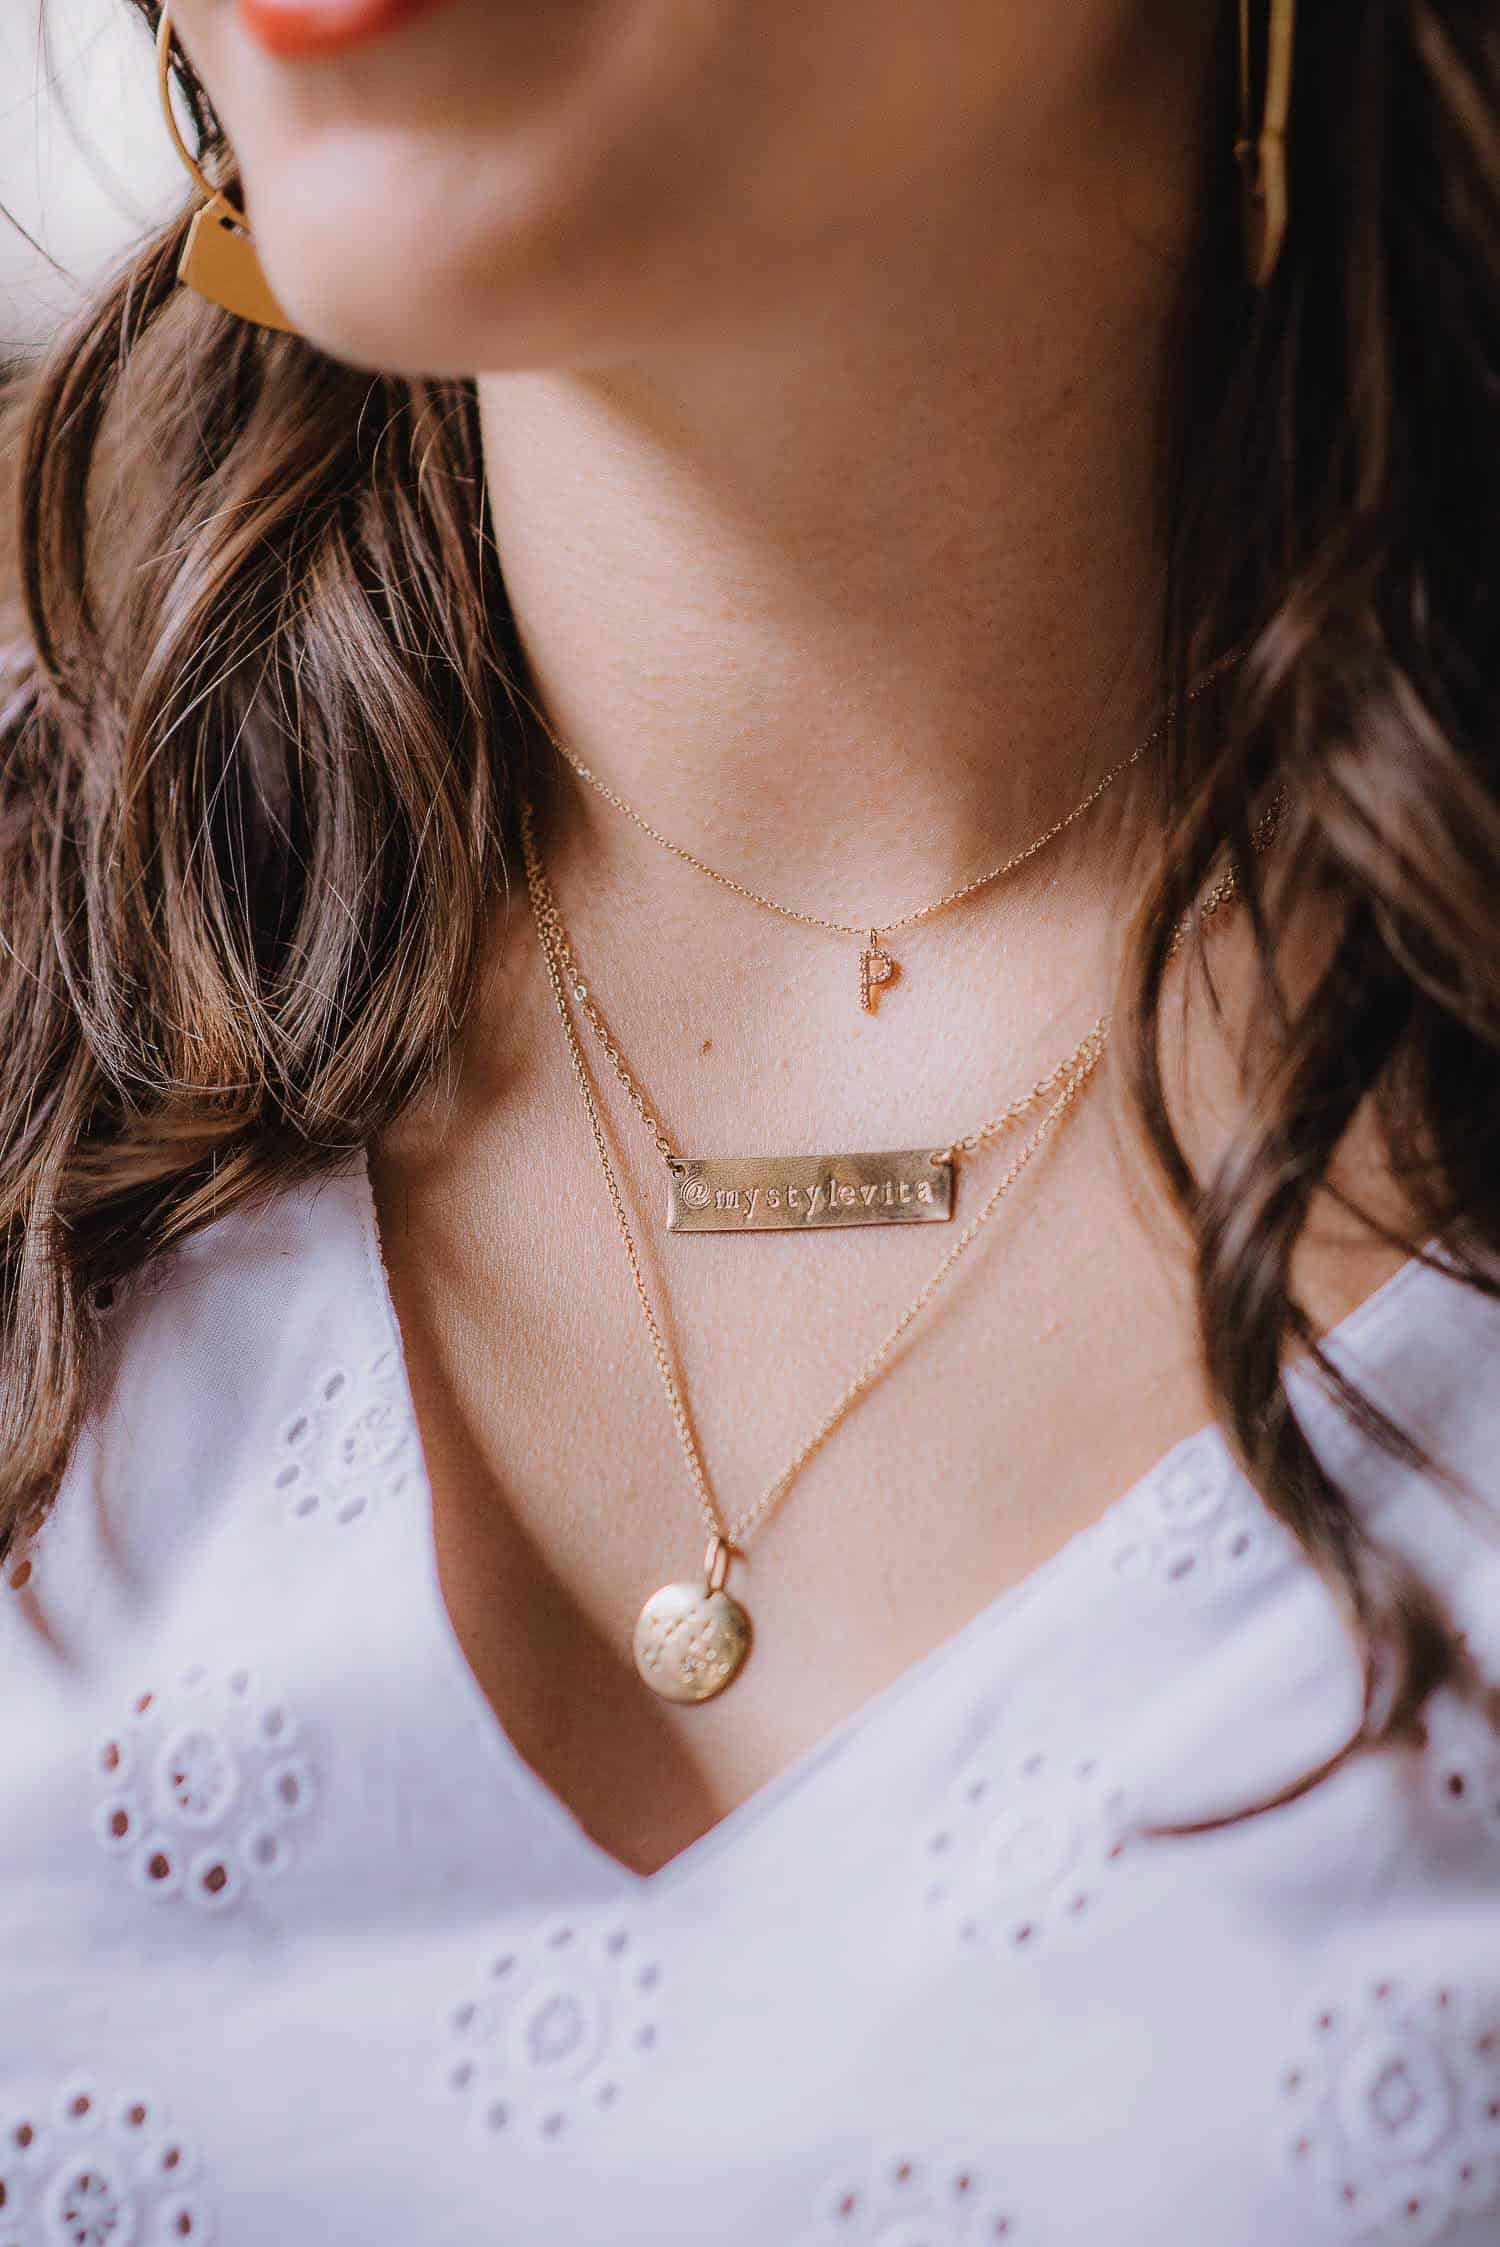 the best affordable gold jewelry  - My Style Vita